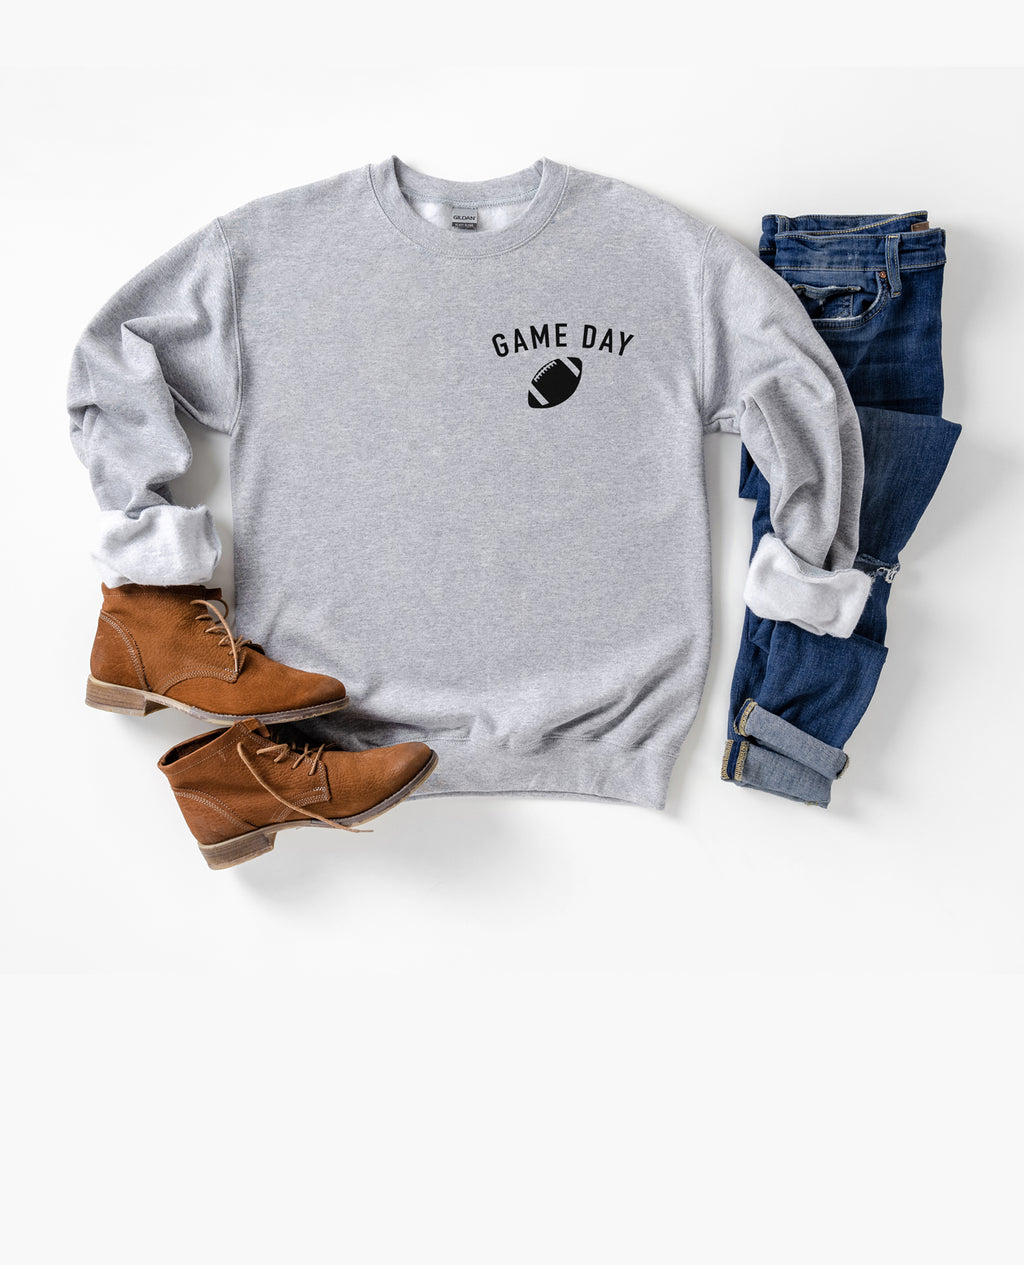 Wear this football sweatshirt and let people know that you're ready for Game Day! Whether you're going to wear this cute football sweatshirt while you go tailgating or wear it to the nearest pub, this football sweatshirt is a great addition for your Sunday Football!